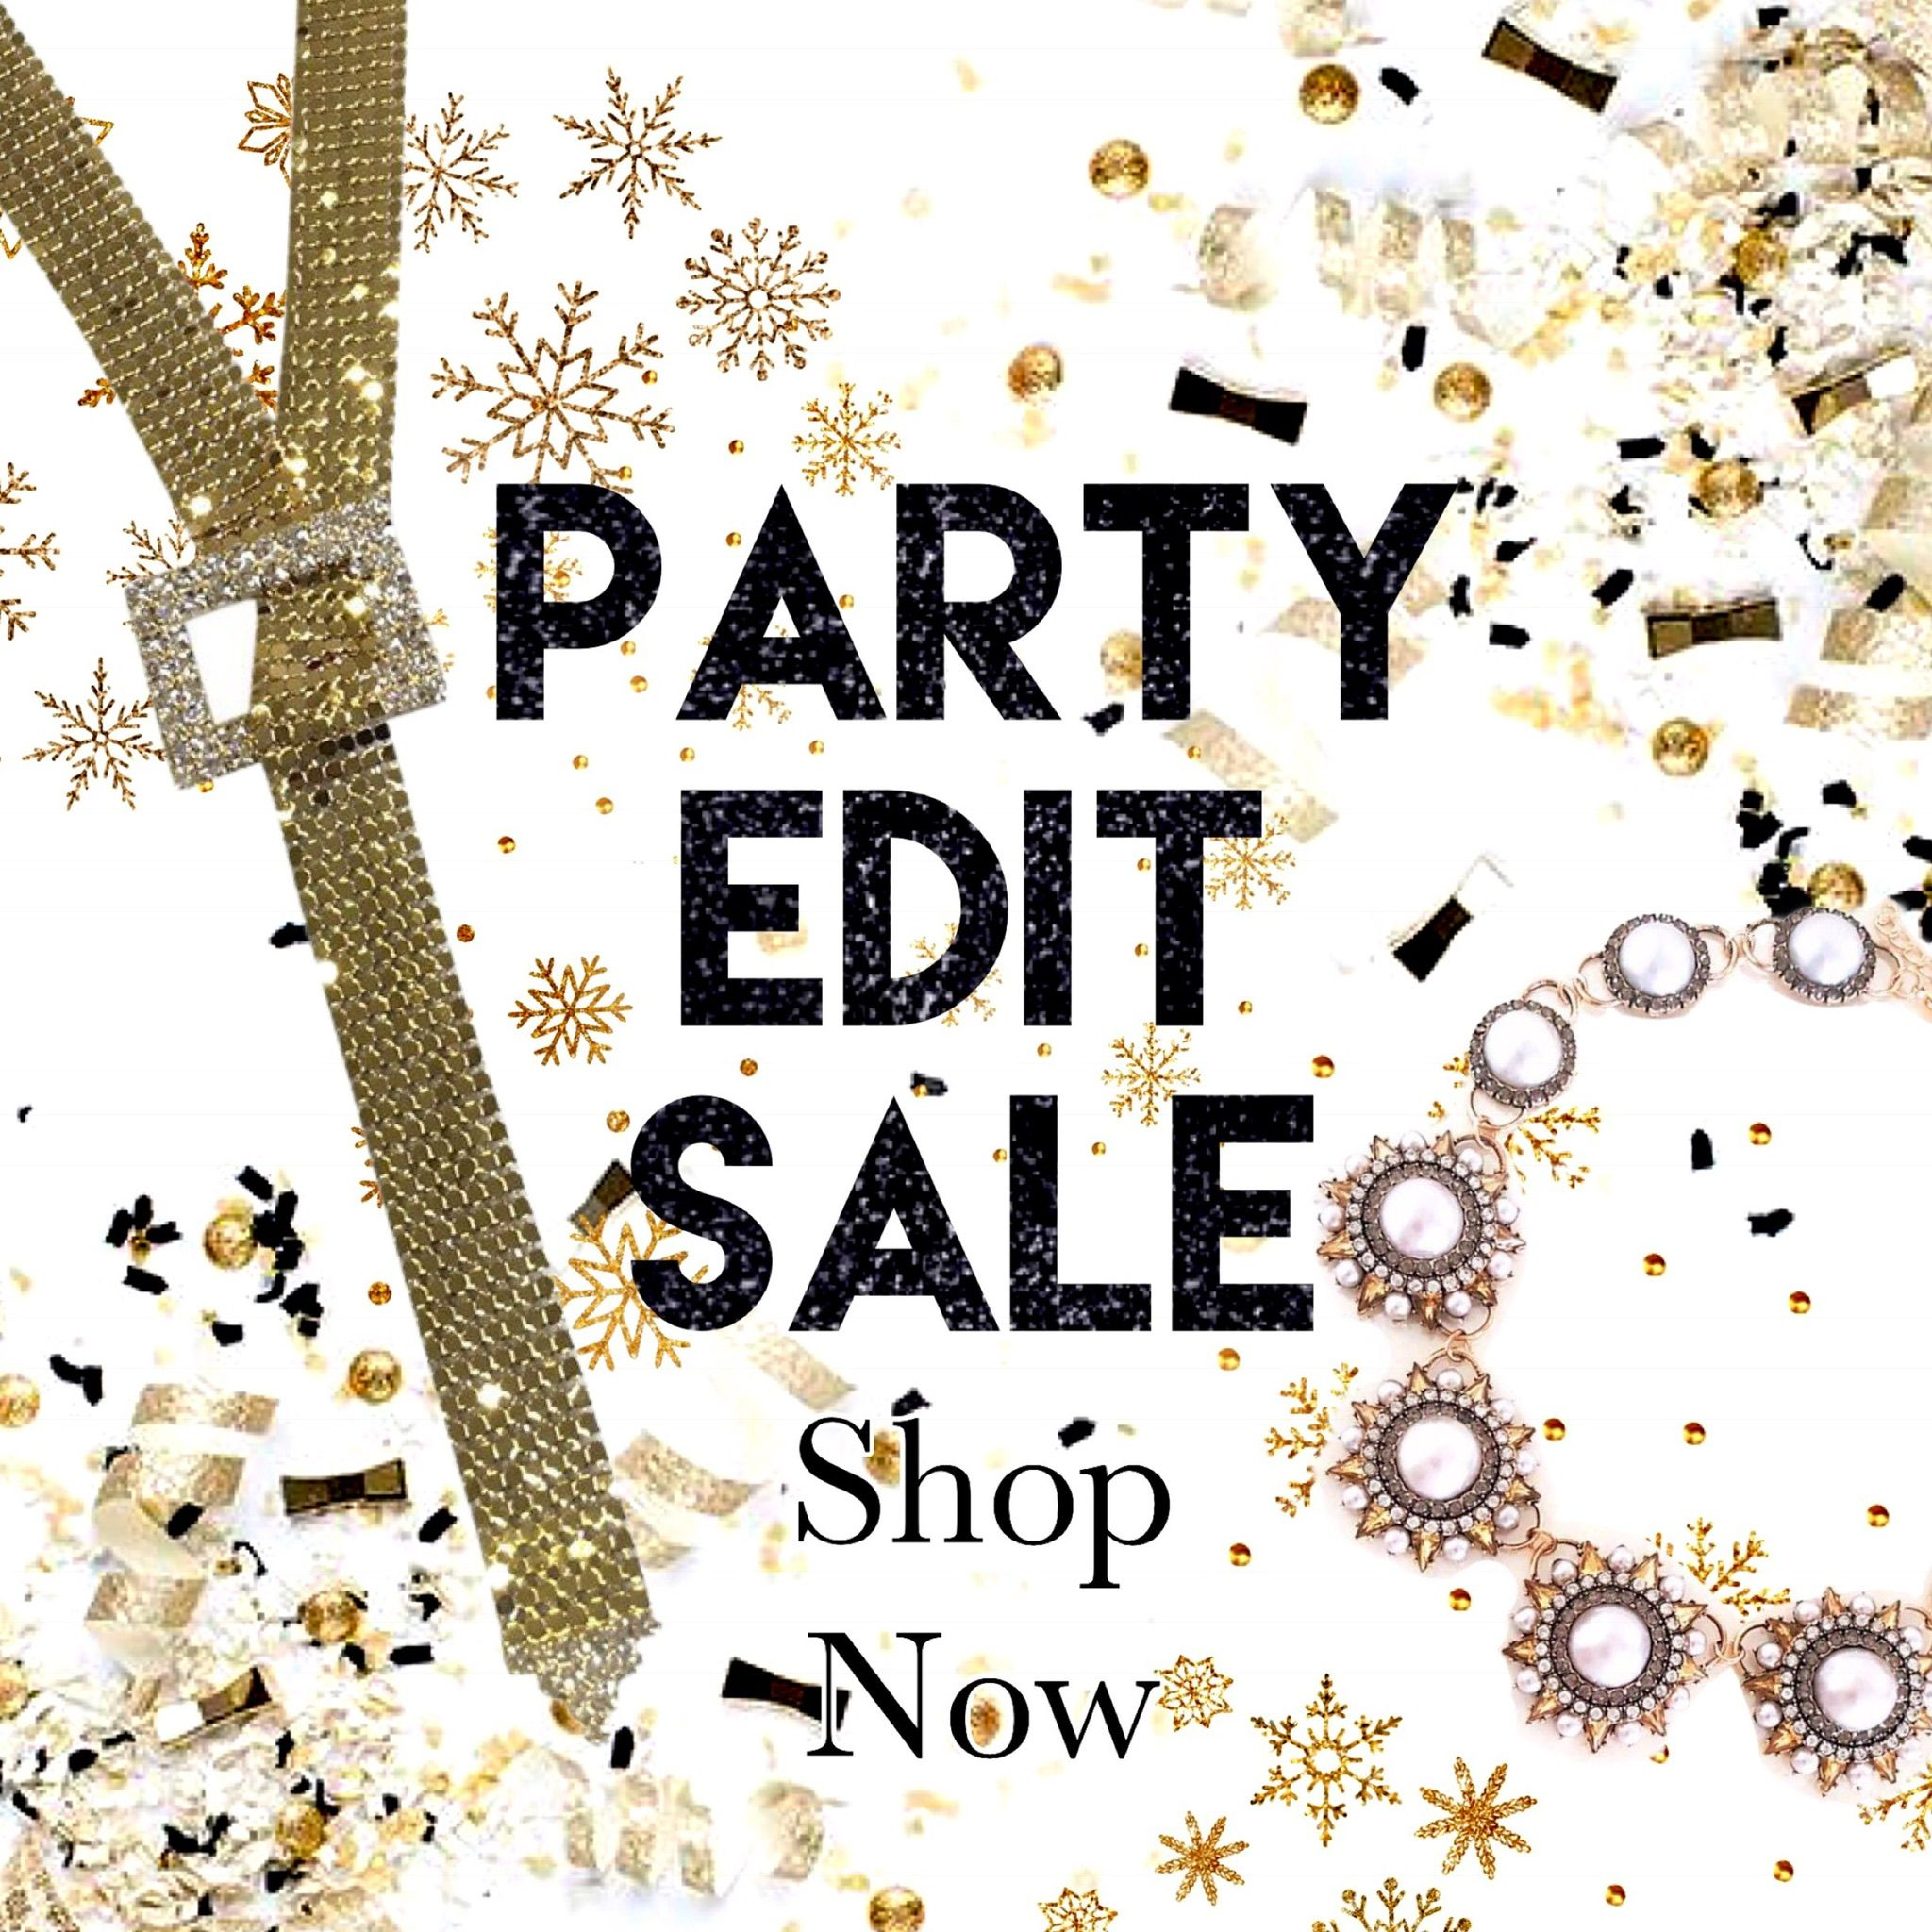 Get ready for the holiday season with our Party Edit Sale on www.theglocaltrunk.com 🎊 Grab the best in fashion jewellery at astonishing prices ✨ . . . . #theglocaltrunk #onlinestore #jewelrygram #onlinesshopping #thebestinfashion #partyedit #sale #onlineboutique #holidayseasonsale #holidaysale #christmasshopping #newyearshopping #partyshopping #salesandoffers #worldwidedelivery #worldwideshipping #fashionjewellery #costumejewelry #instajewellery